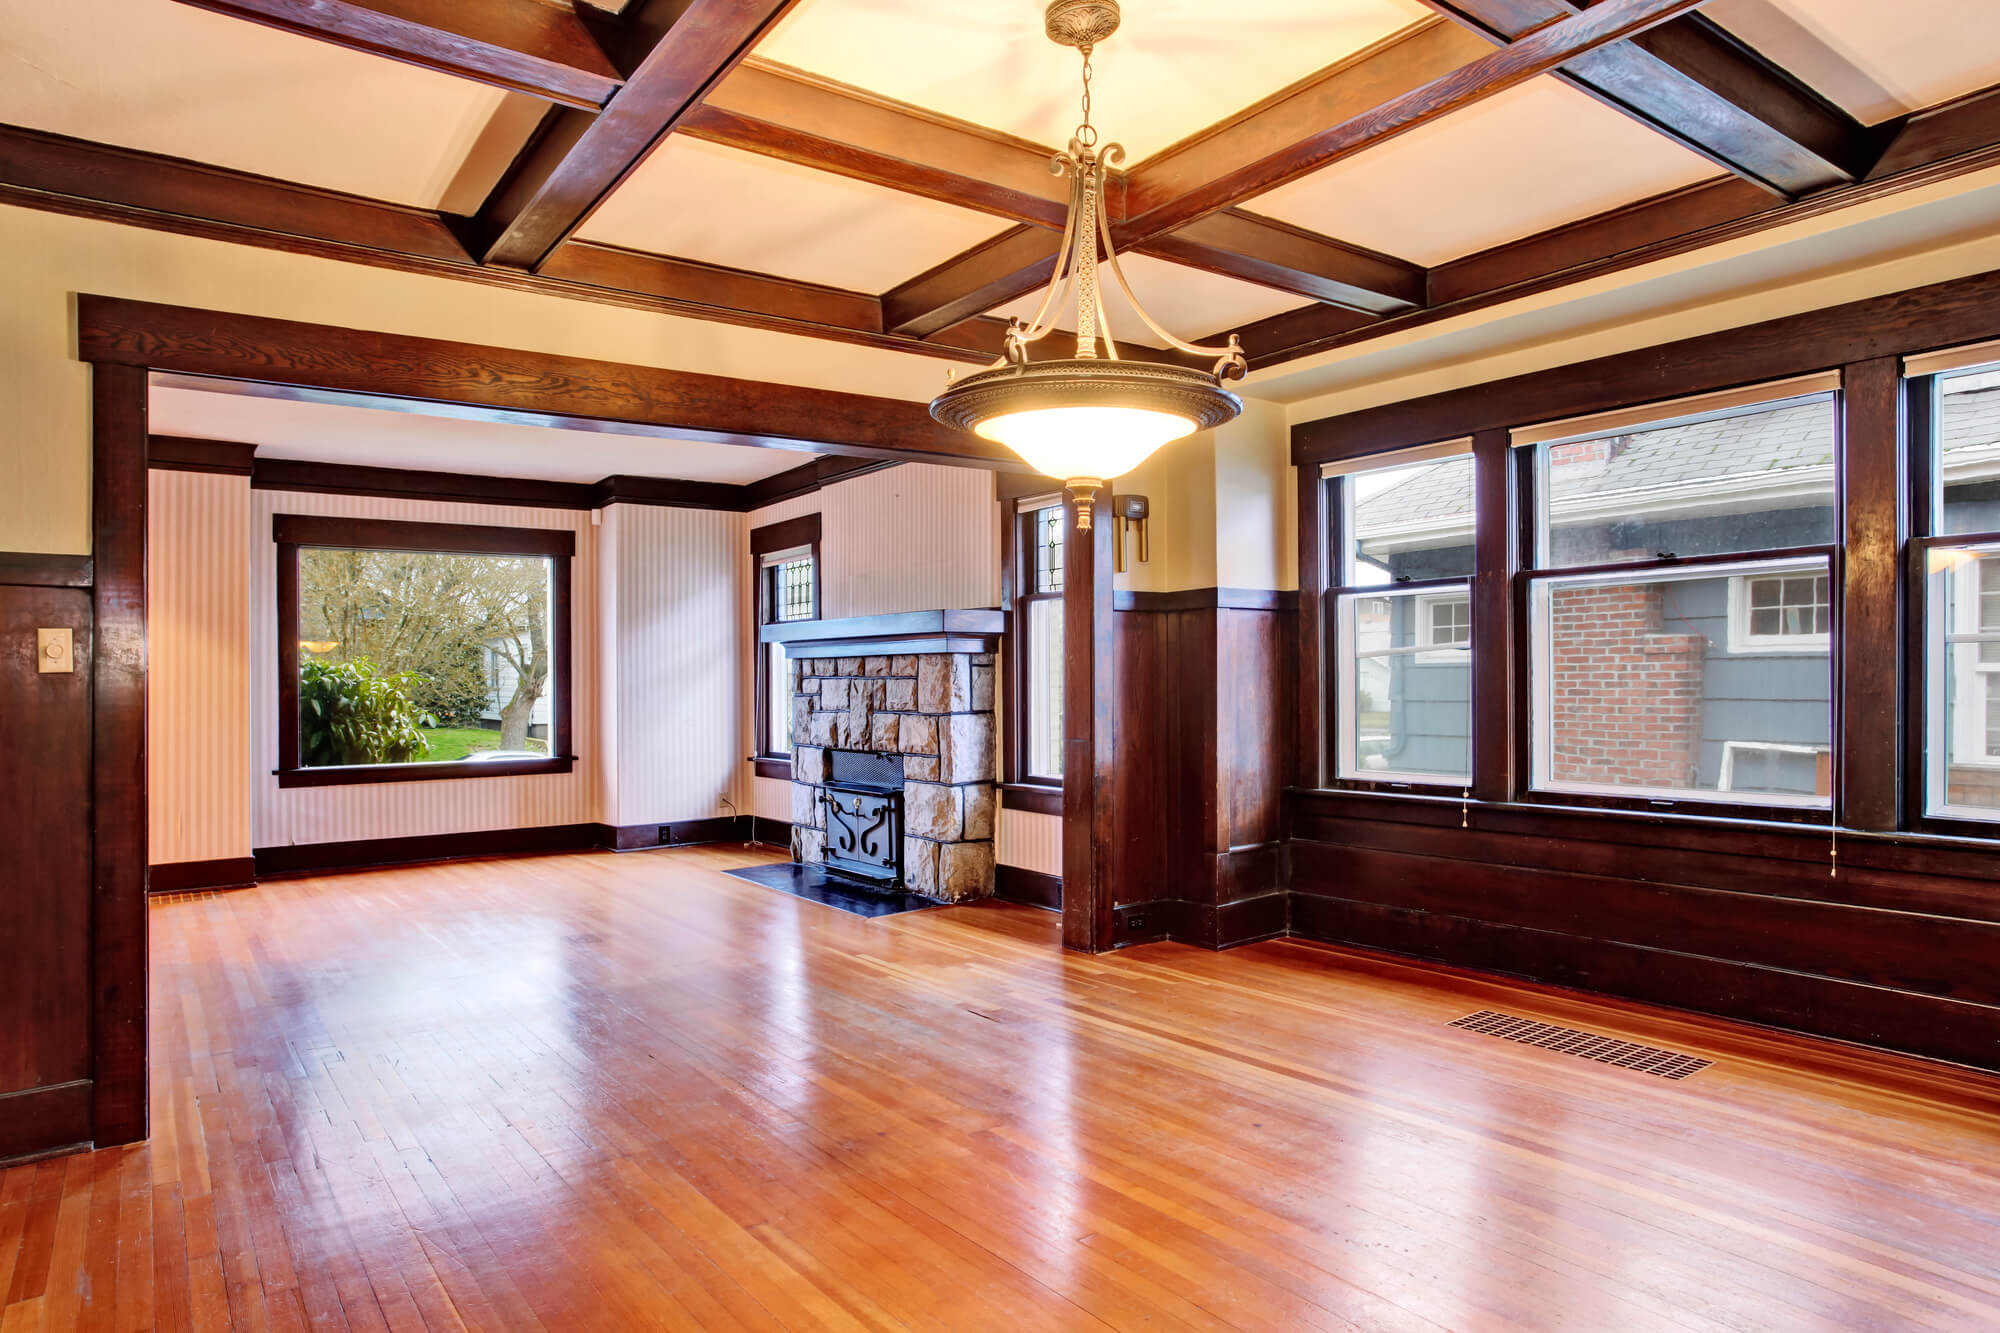 How to Build a Coffered Ceiling With Ease